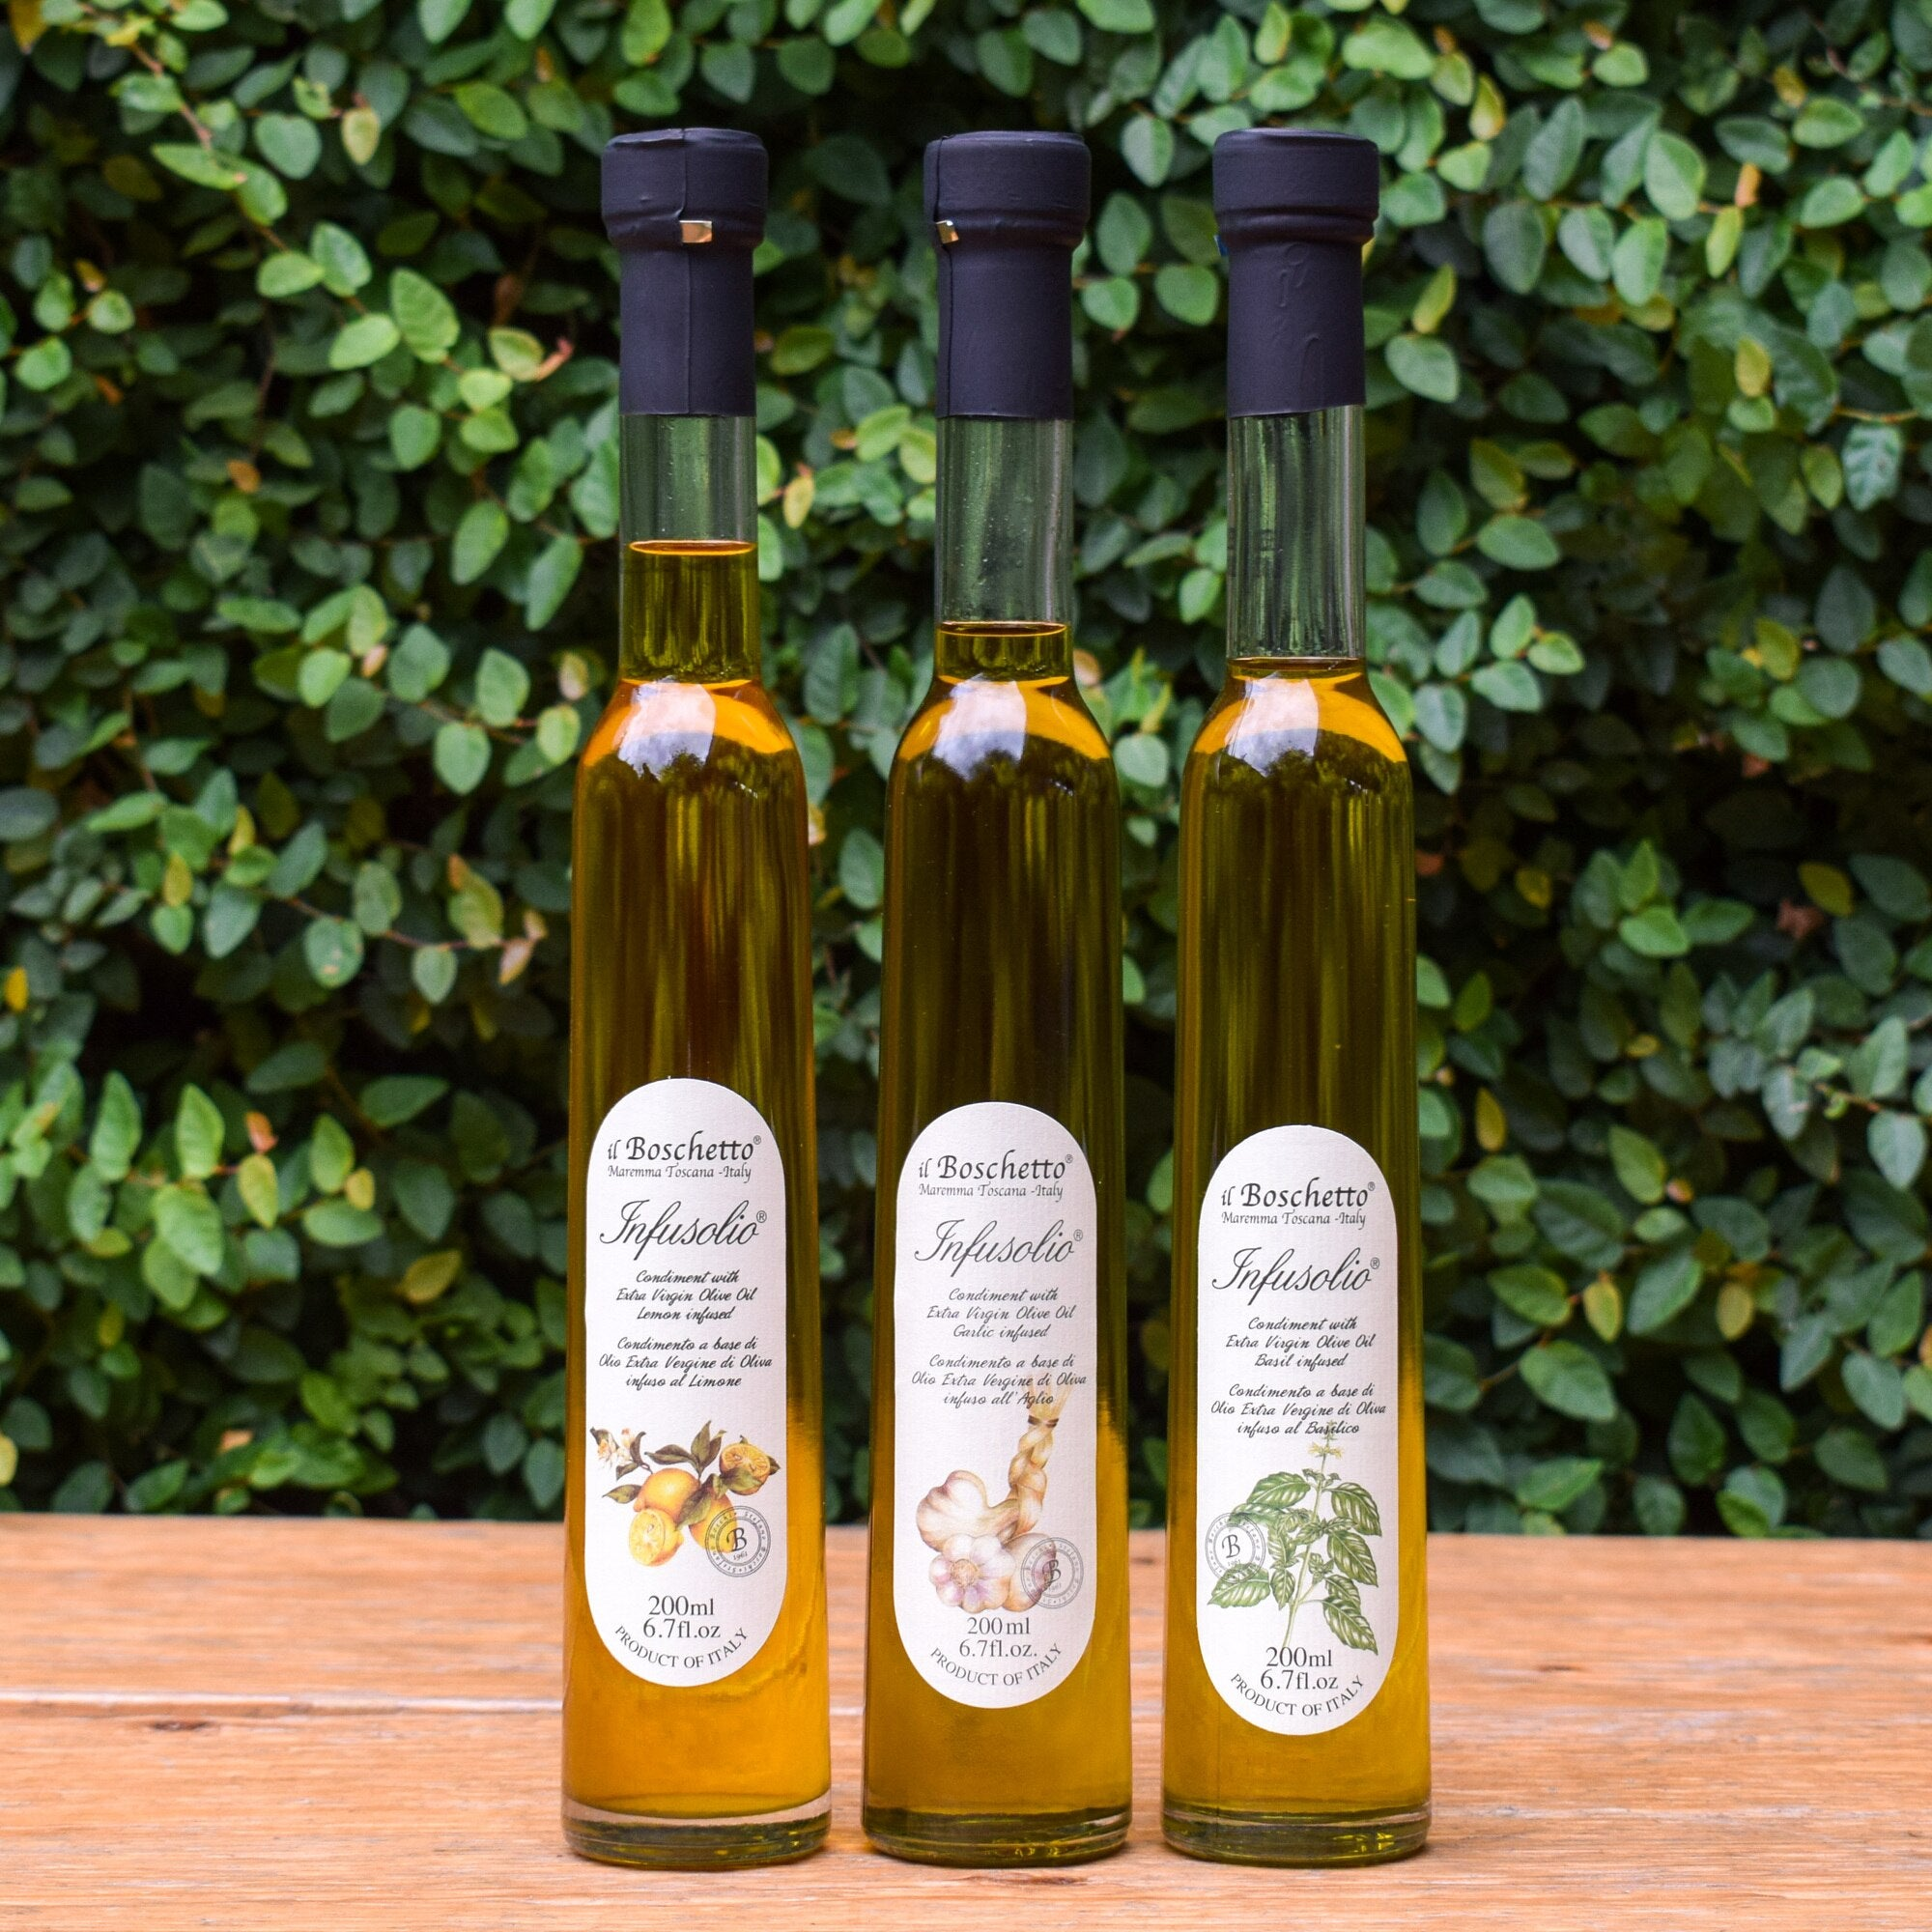 The French Farm - Il Boschetto Basil Infused Extra Virgin Olive Oil